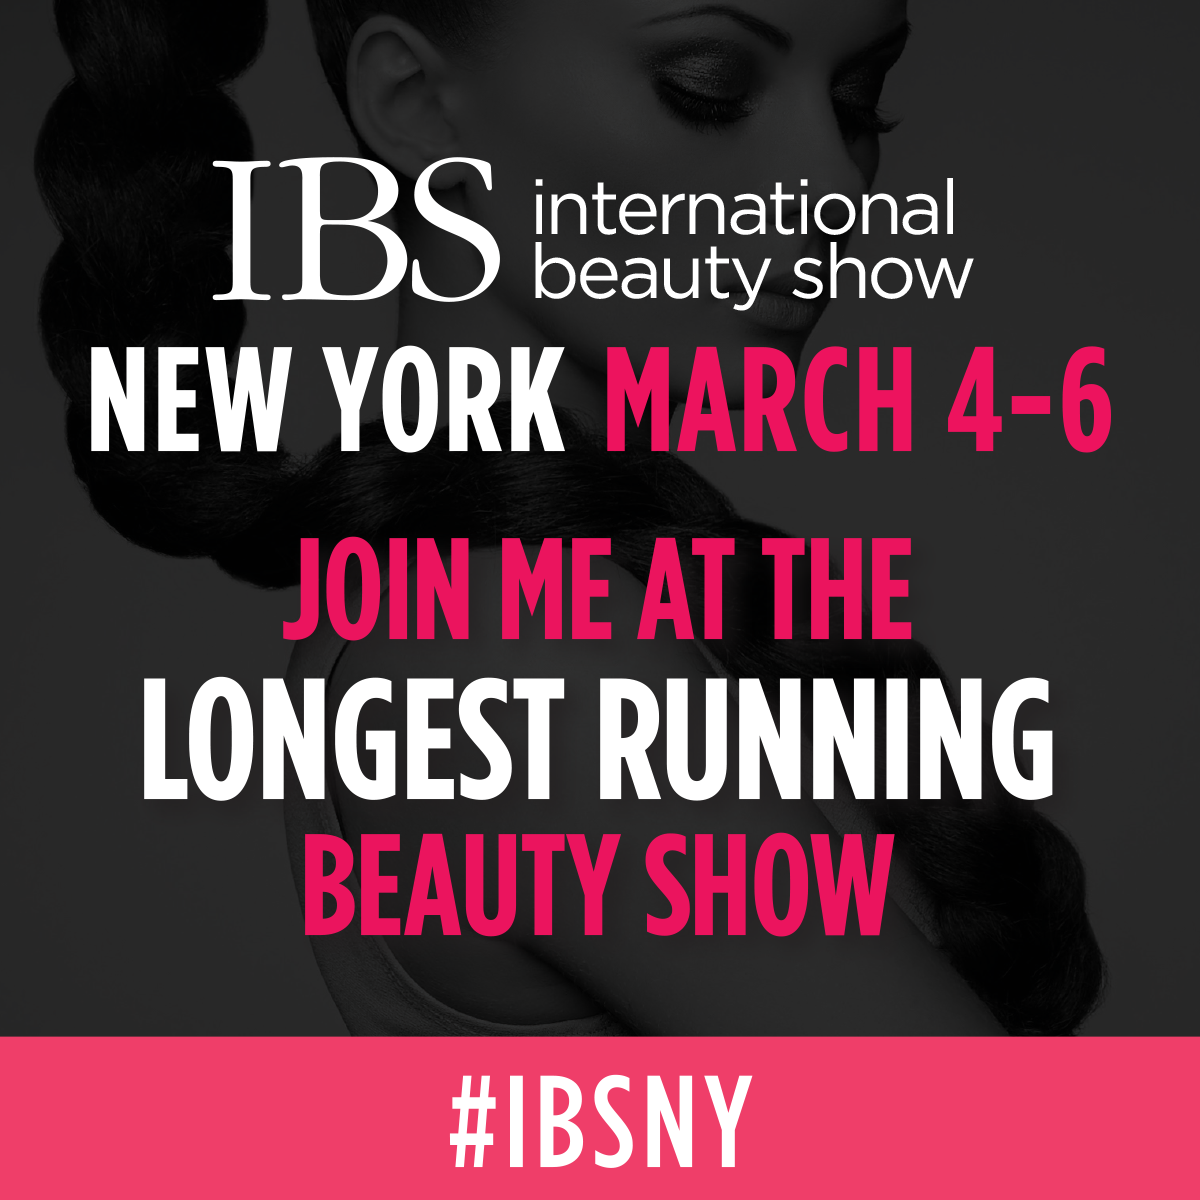 Join me at the longest running beauty show